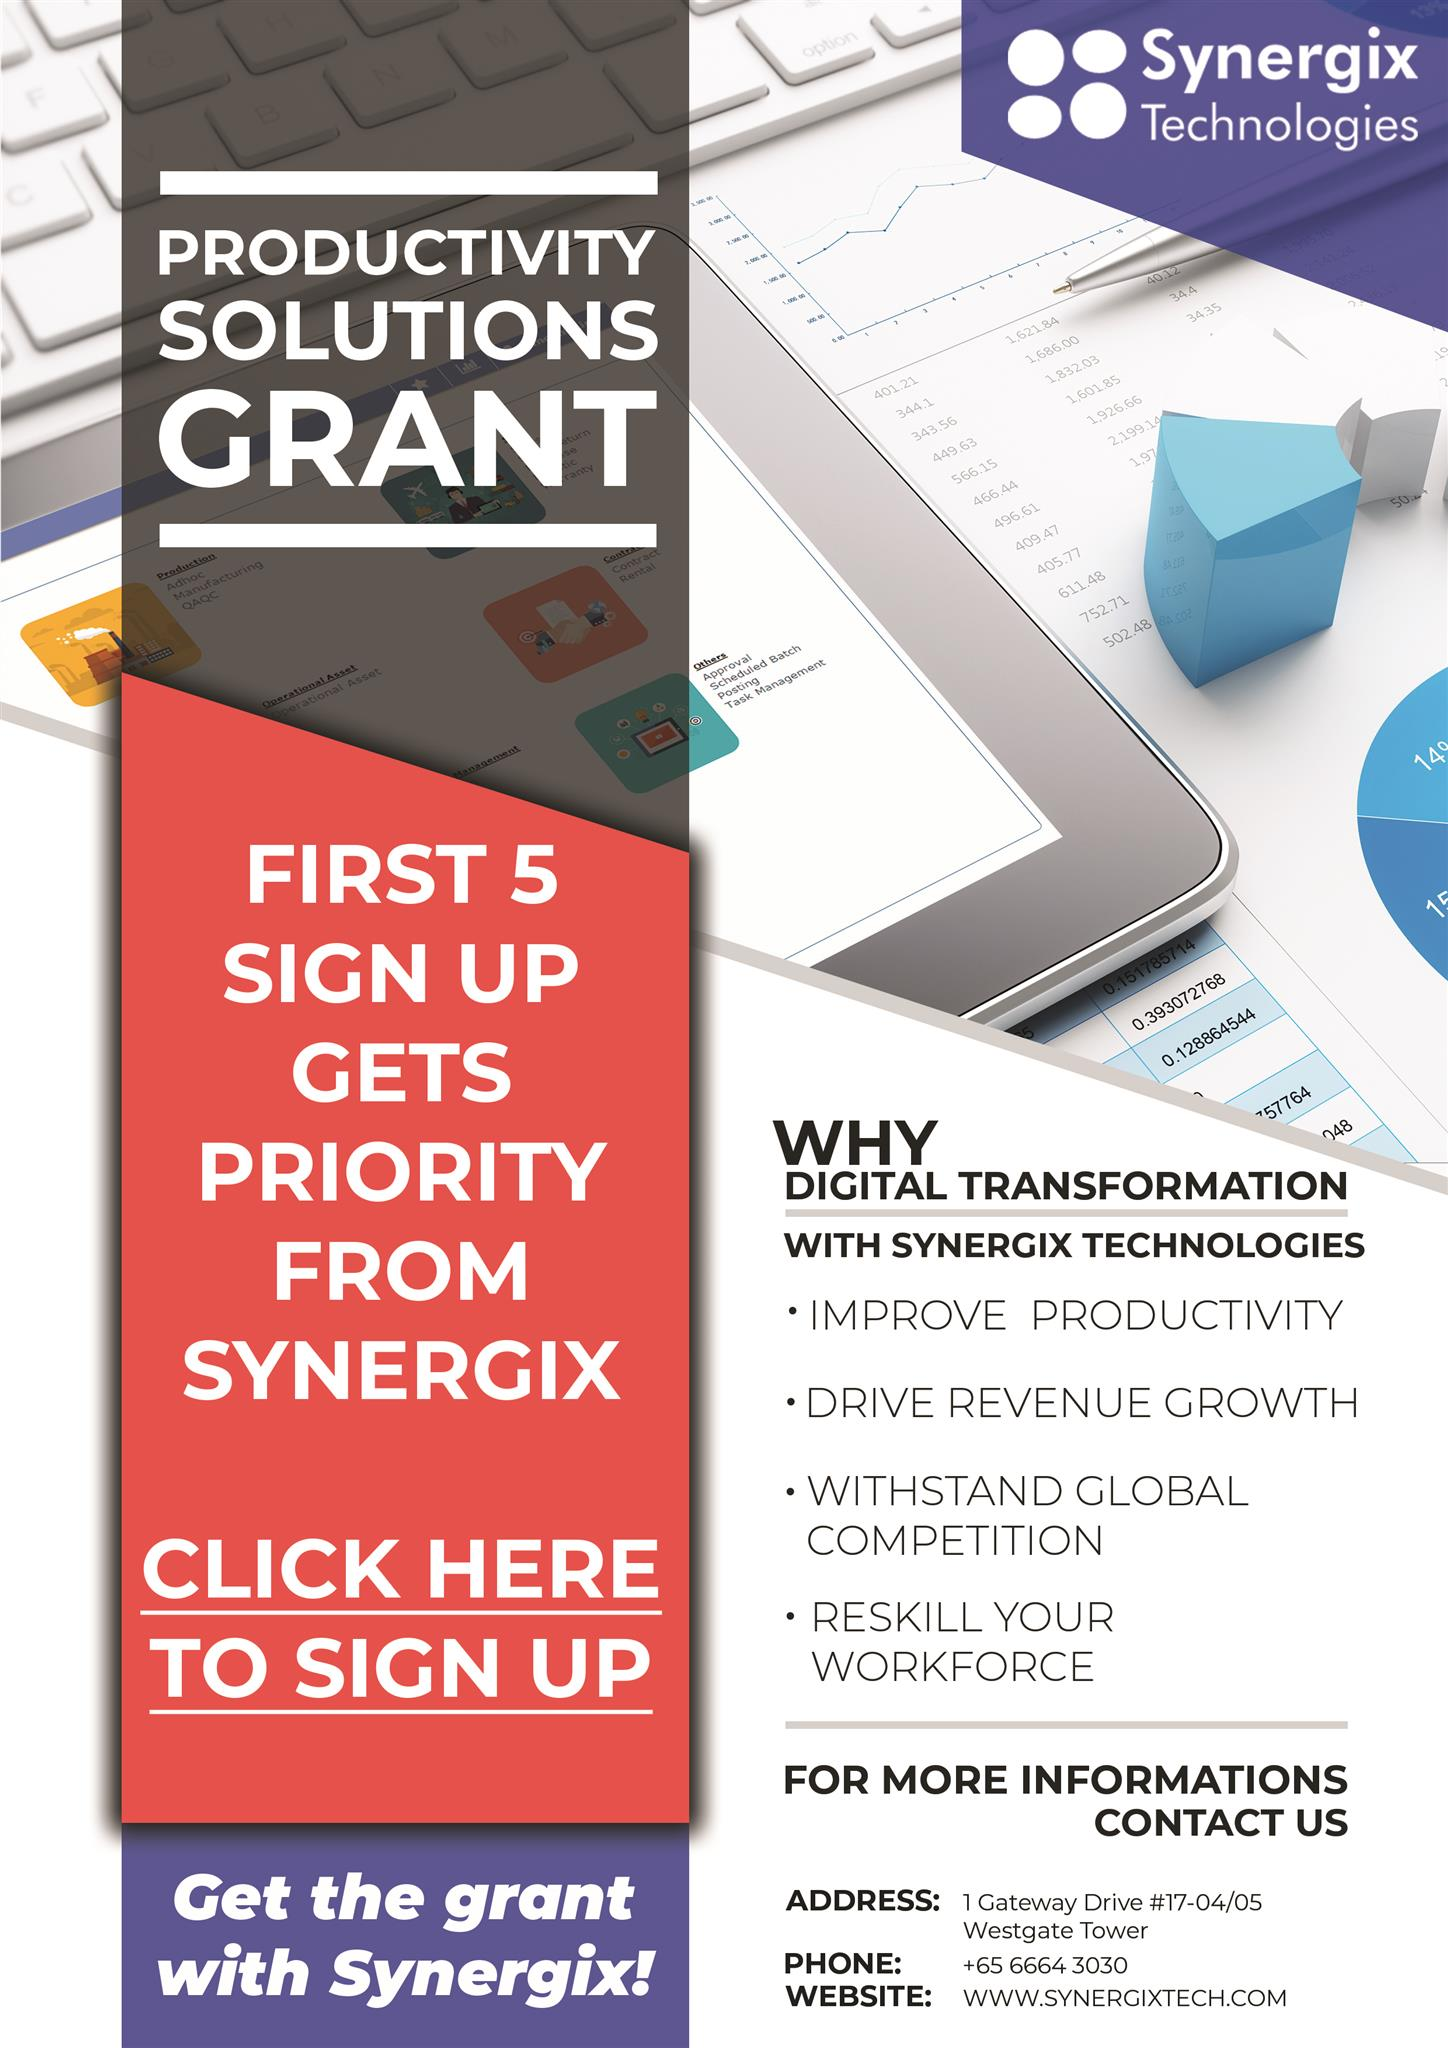 Grant EDM background 7 - Productivity Solutions Grant: Priority for first 5 Sign Ups!